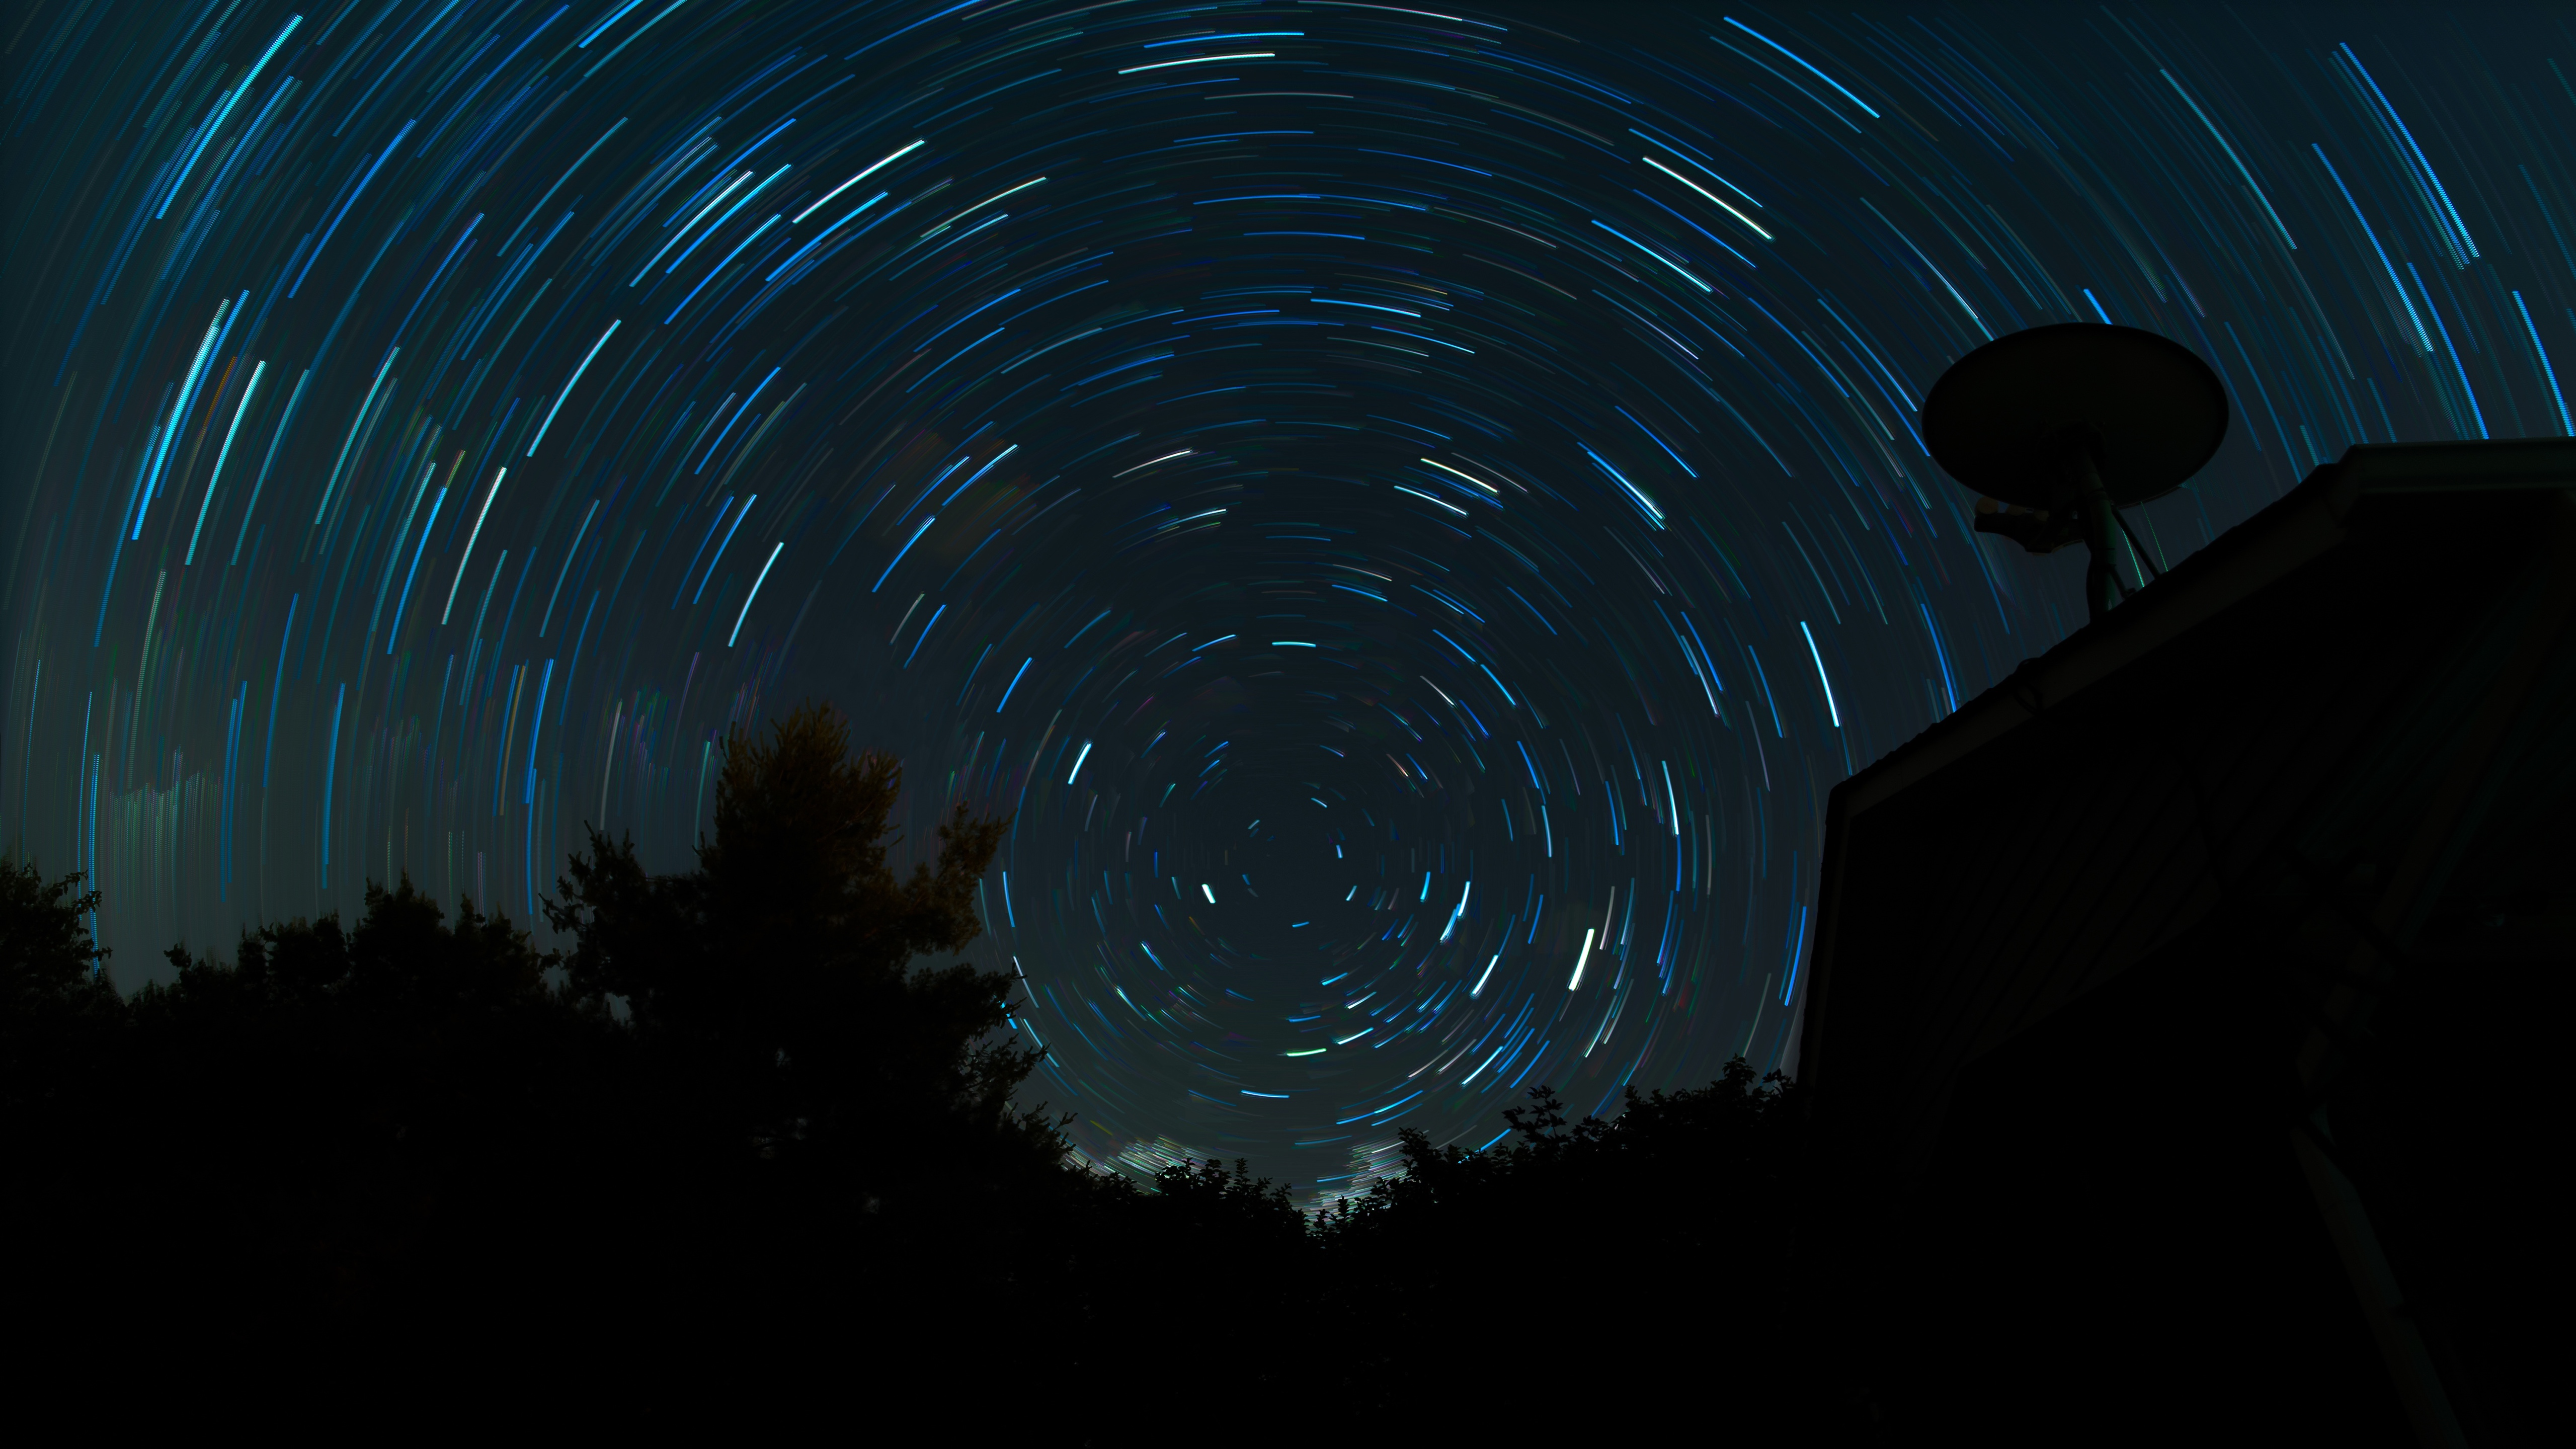 Night sky time lapse photography An Introduction to Time-Lapse Photography